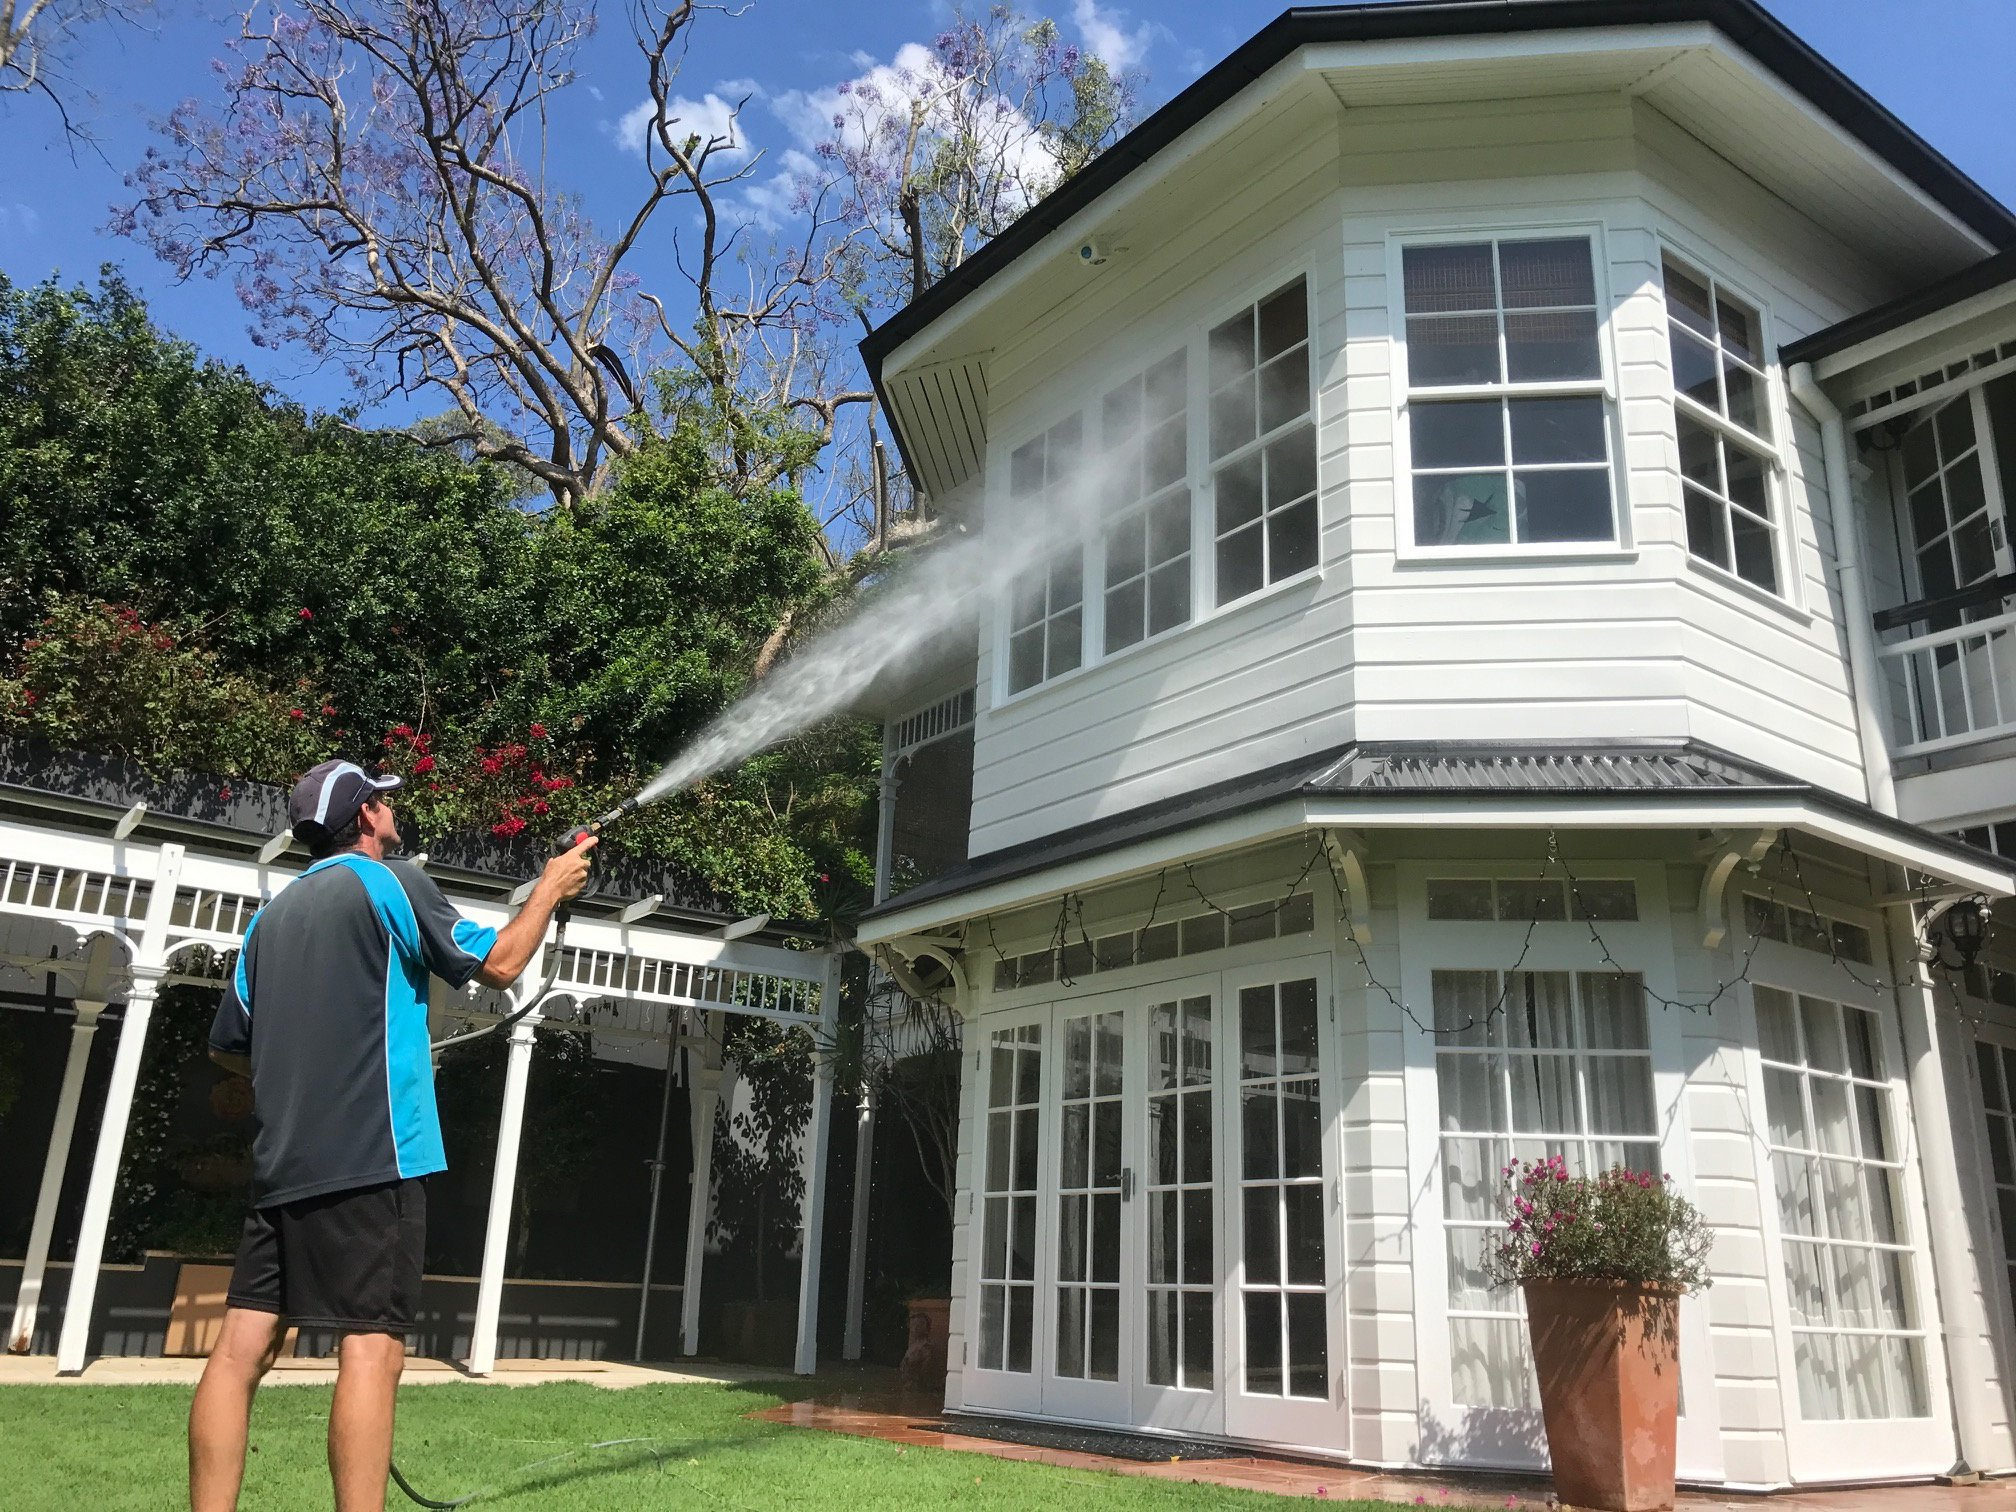 Ashgrove Roof washing services